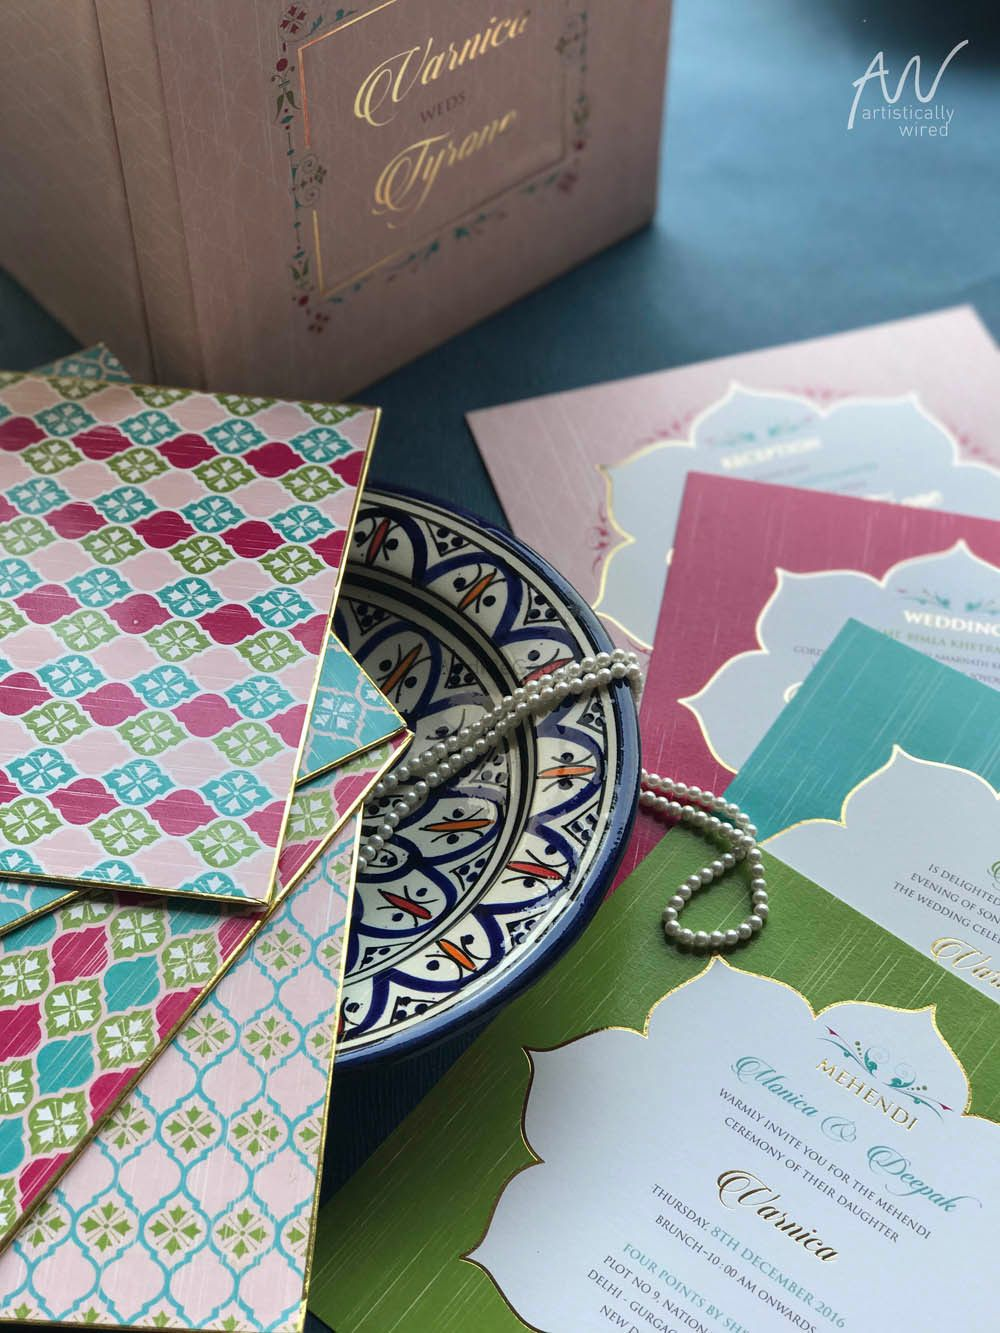 Photo From Moroccan Patterns - By Artistically Wired